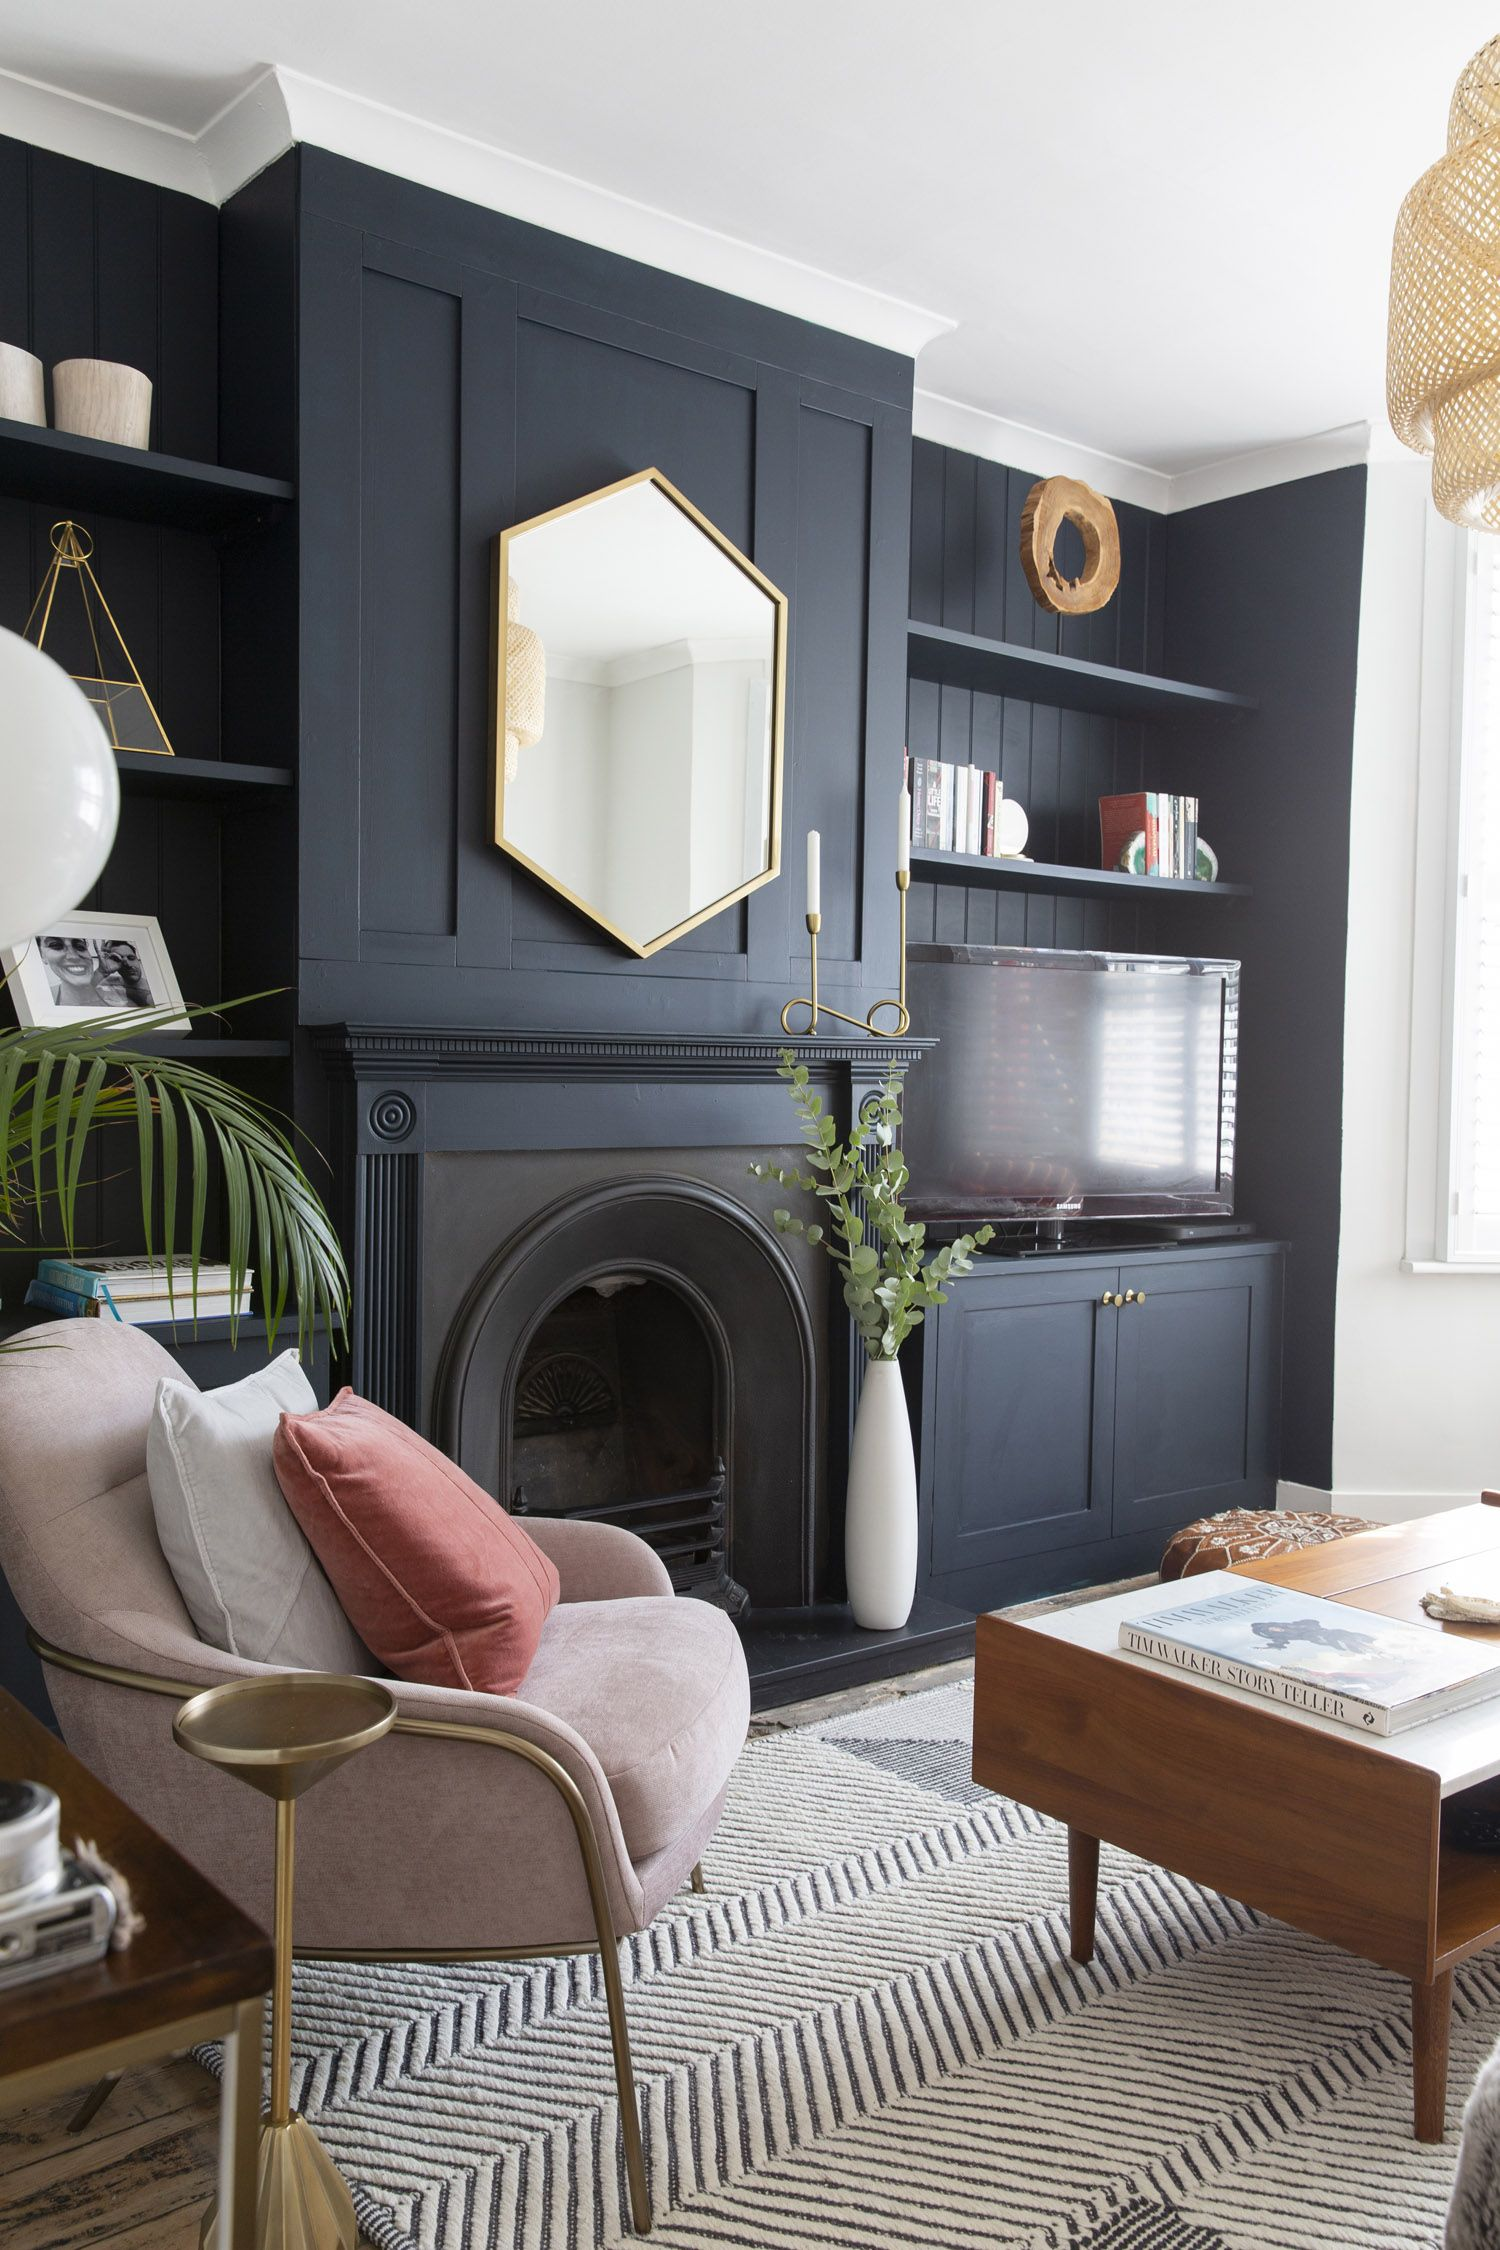 Design Crew A Living Room Renovation With The Layover Life In Kingston England Front Main Living Room Renovation Victorian Living Room Dark Living Rooms Living room ideas england